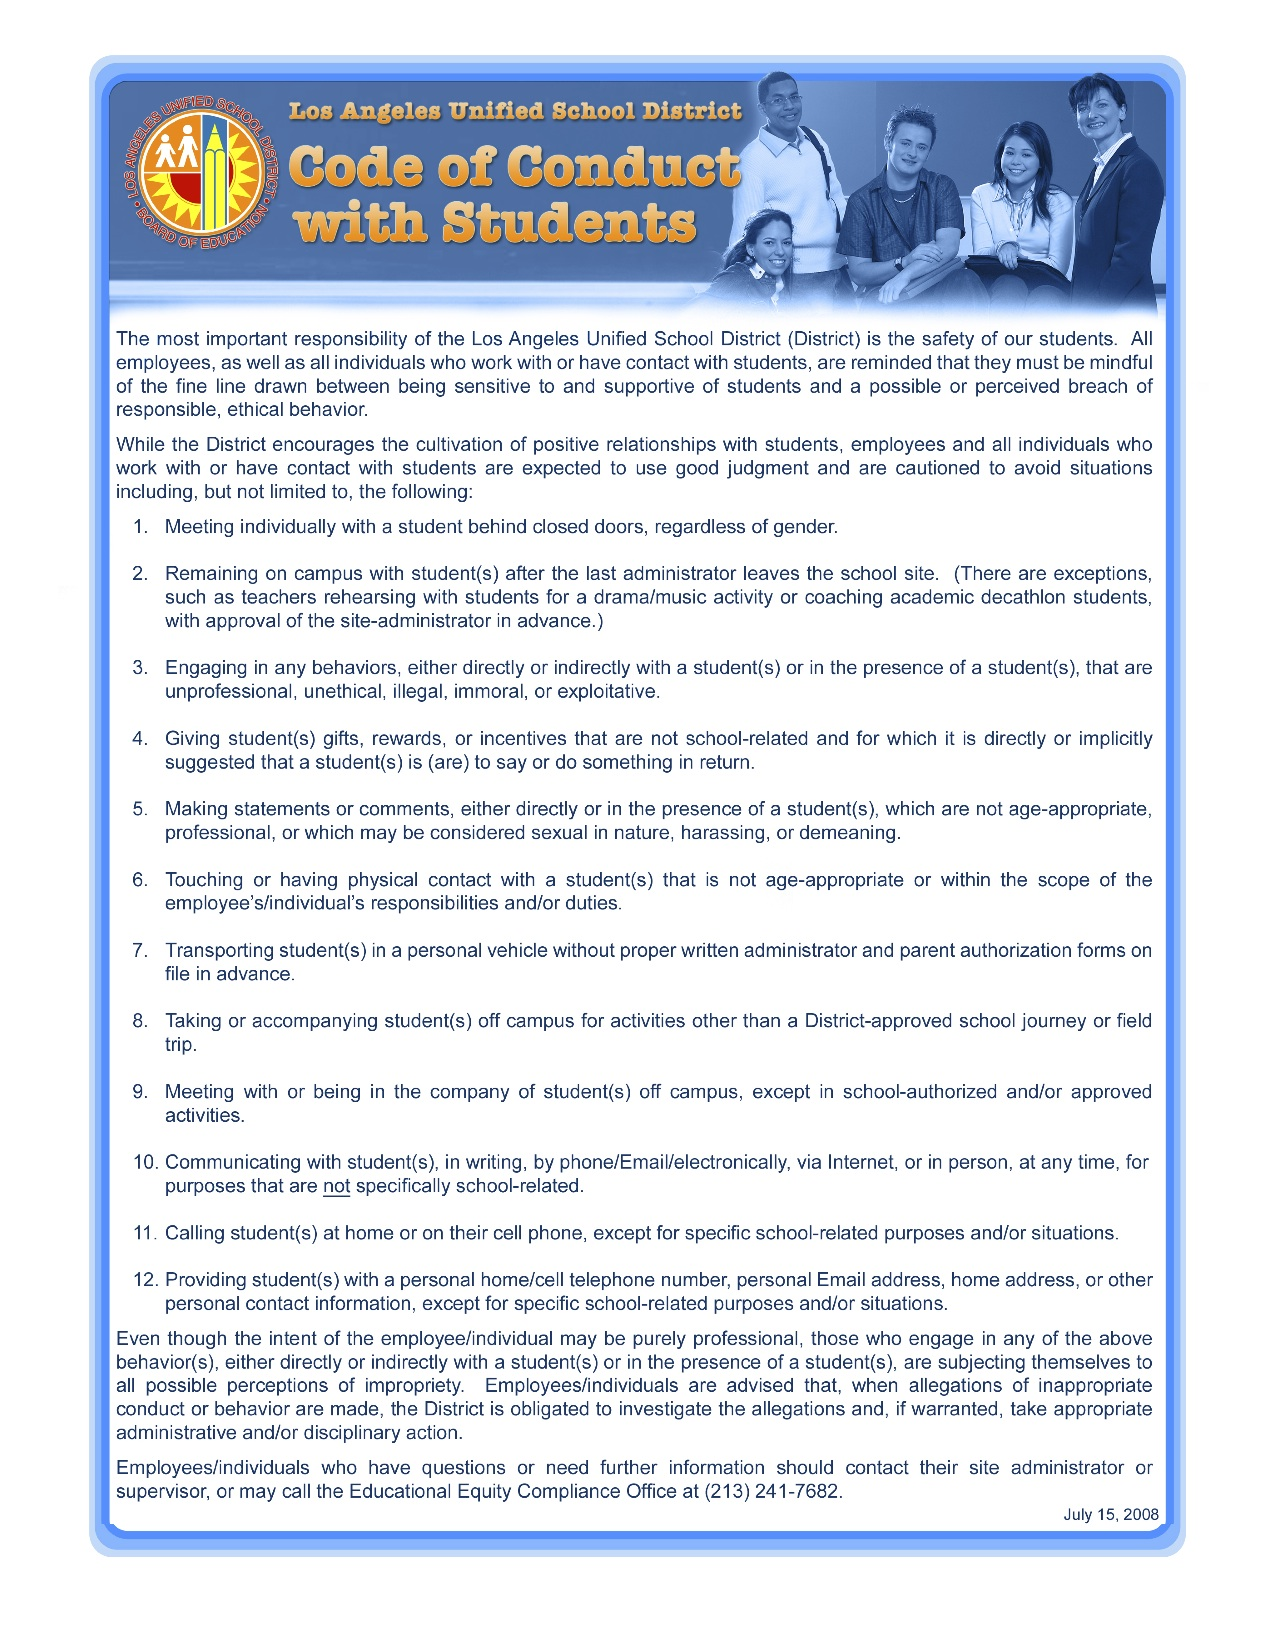 Code of Conduct with Students